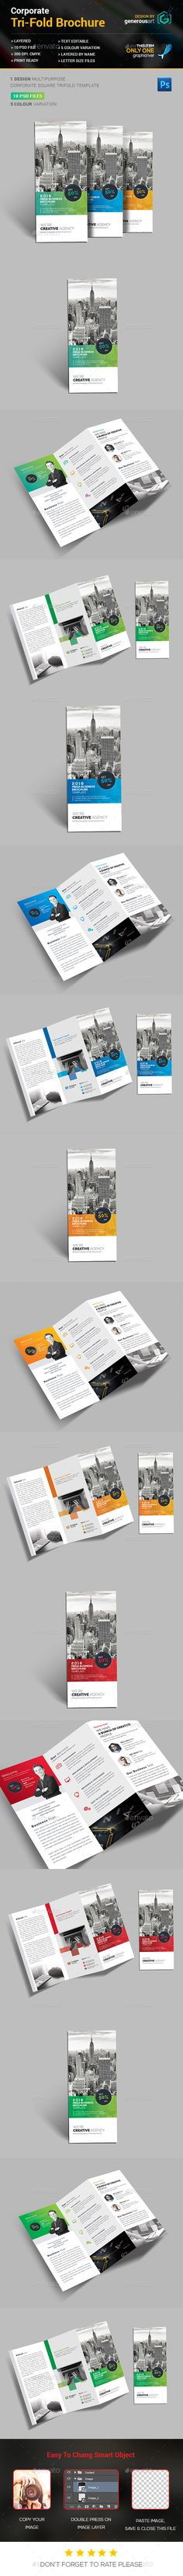 Square Bi-fold Brochure Mock-Up Creative, Template and Words - free bi fold brochure template word